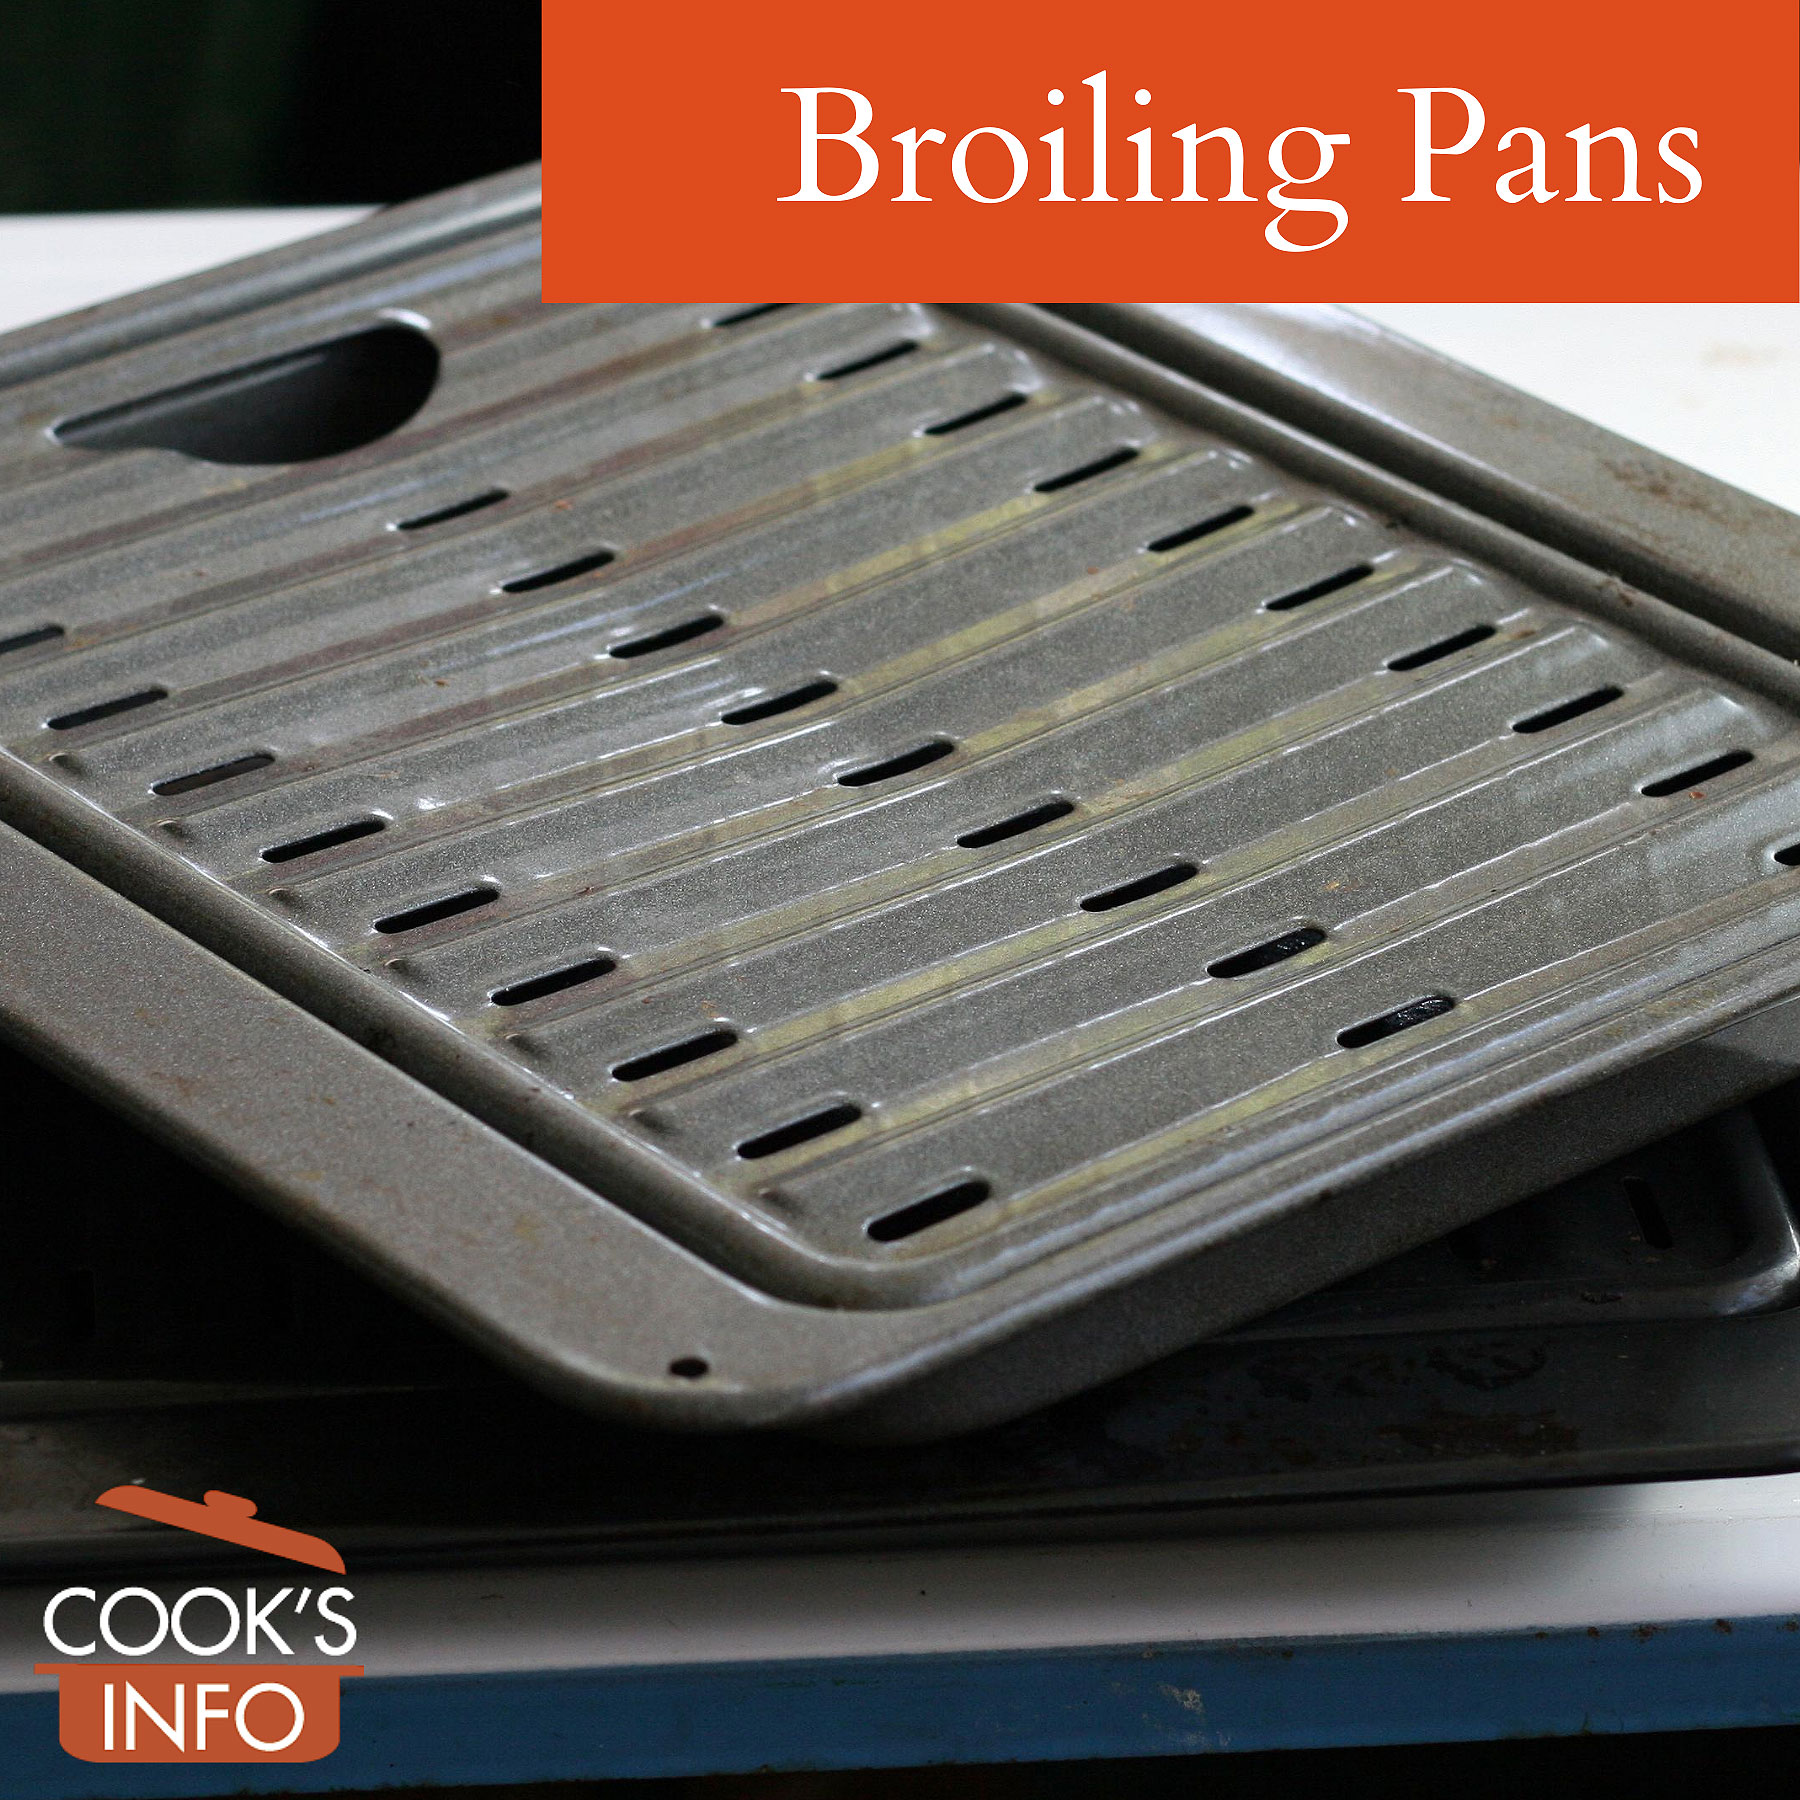 Broiling pans